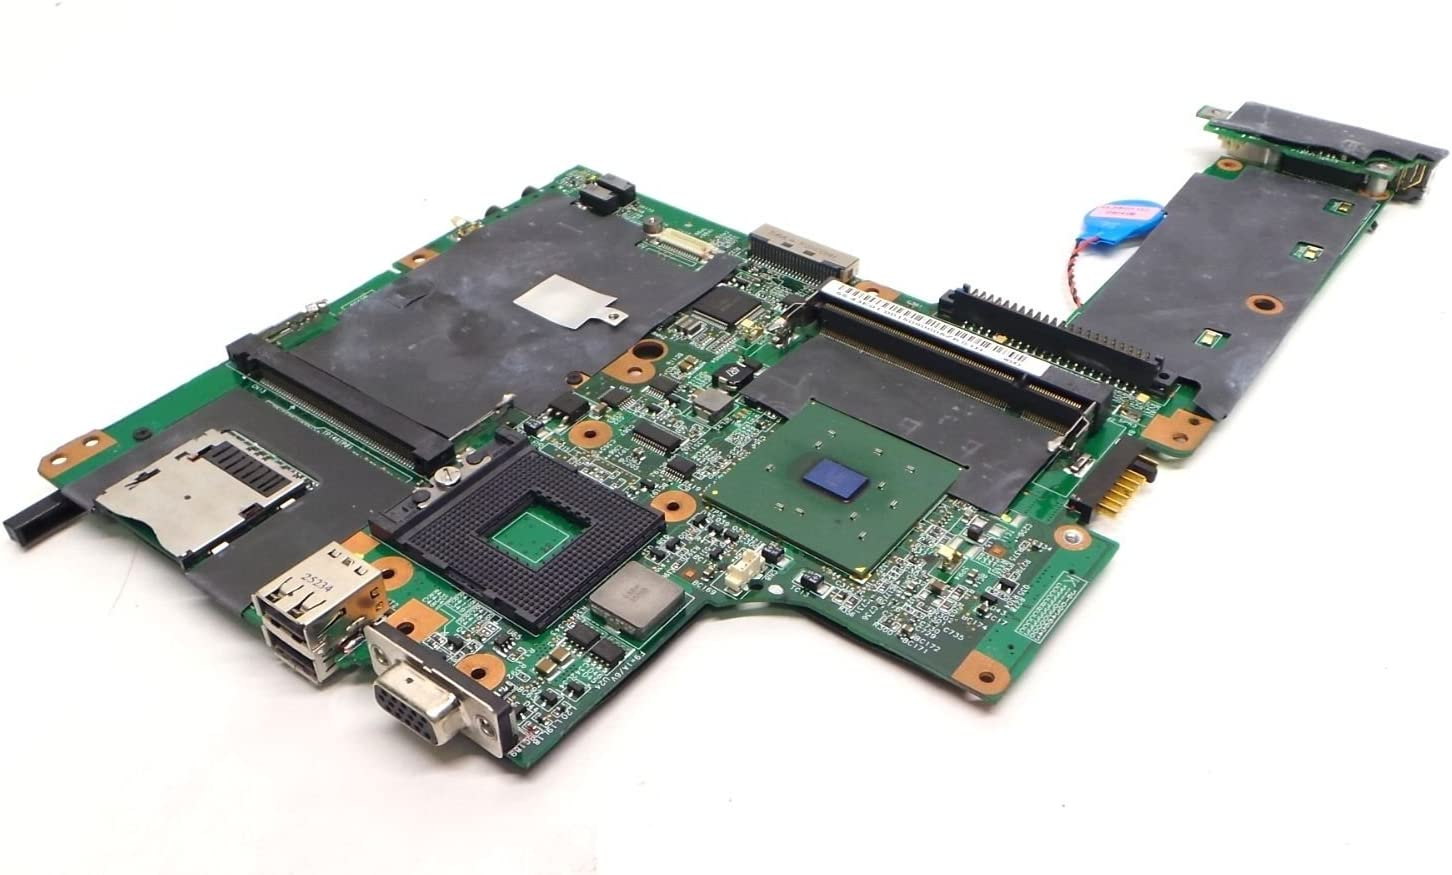 Genuine Dell J9873 RG076 Inspiron 700M 710M Intel 855GME Laptop Notebook Motherboard Logic System Board Compatible Part Numbers: J9873 RG076